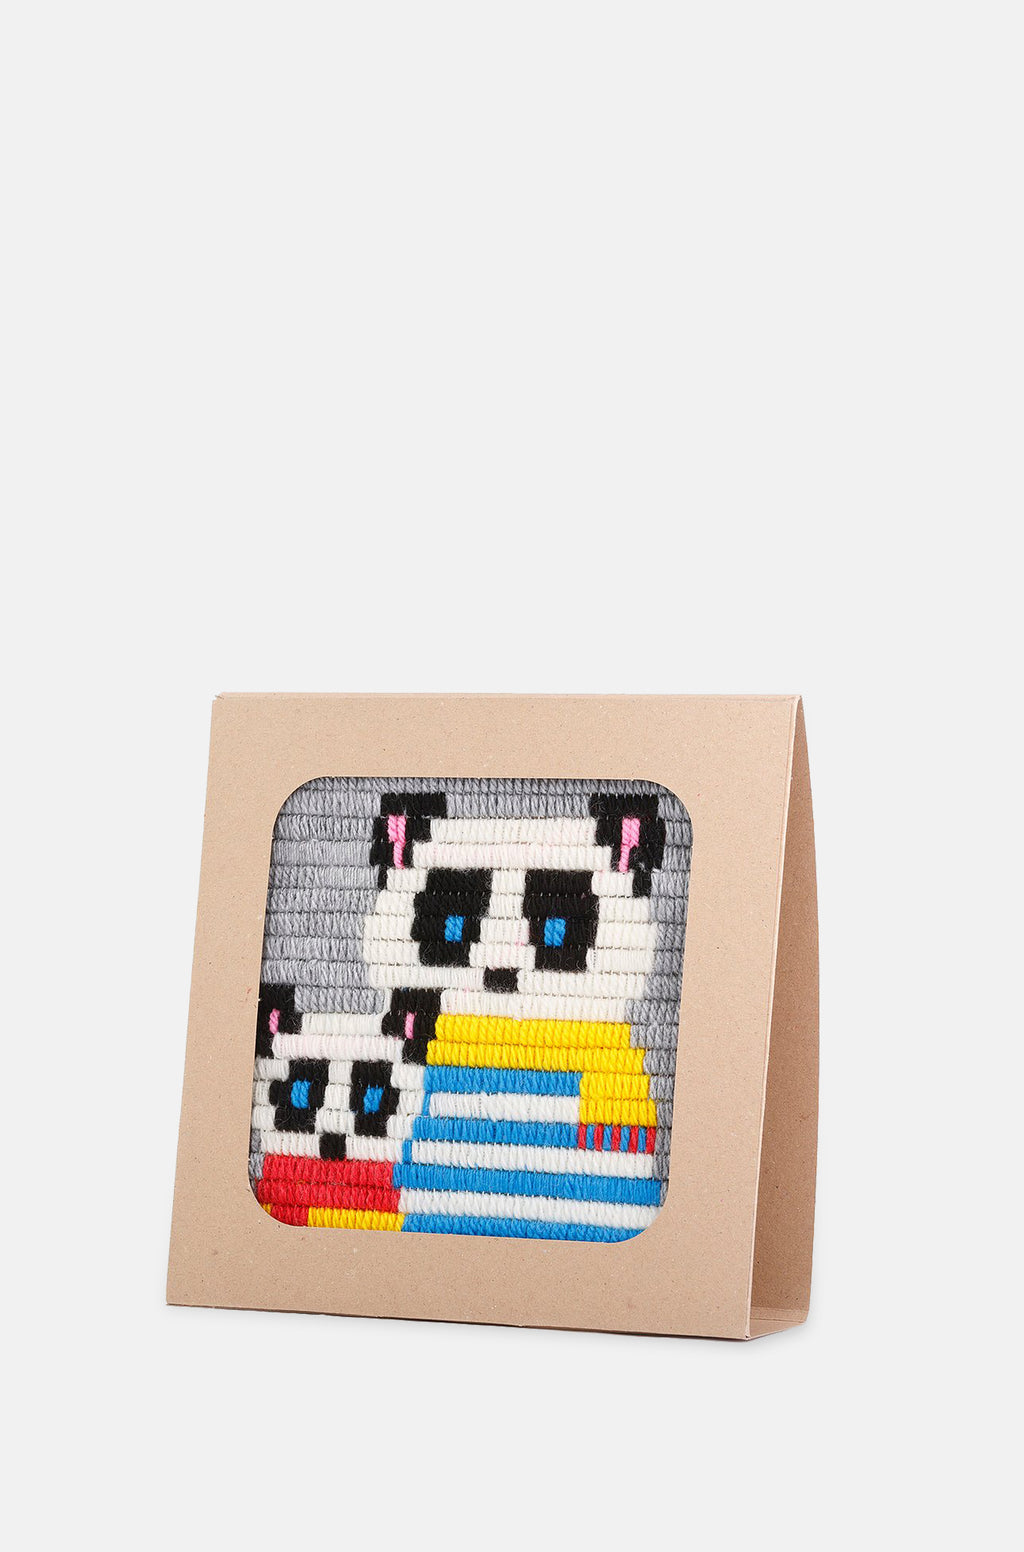 Panda Embroidery Kit